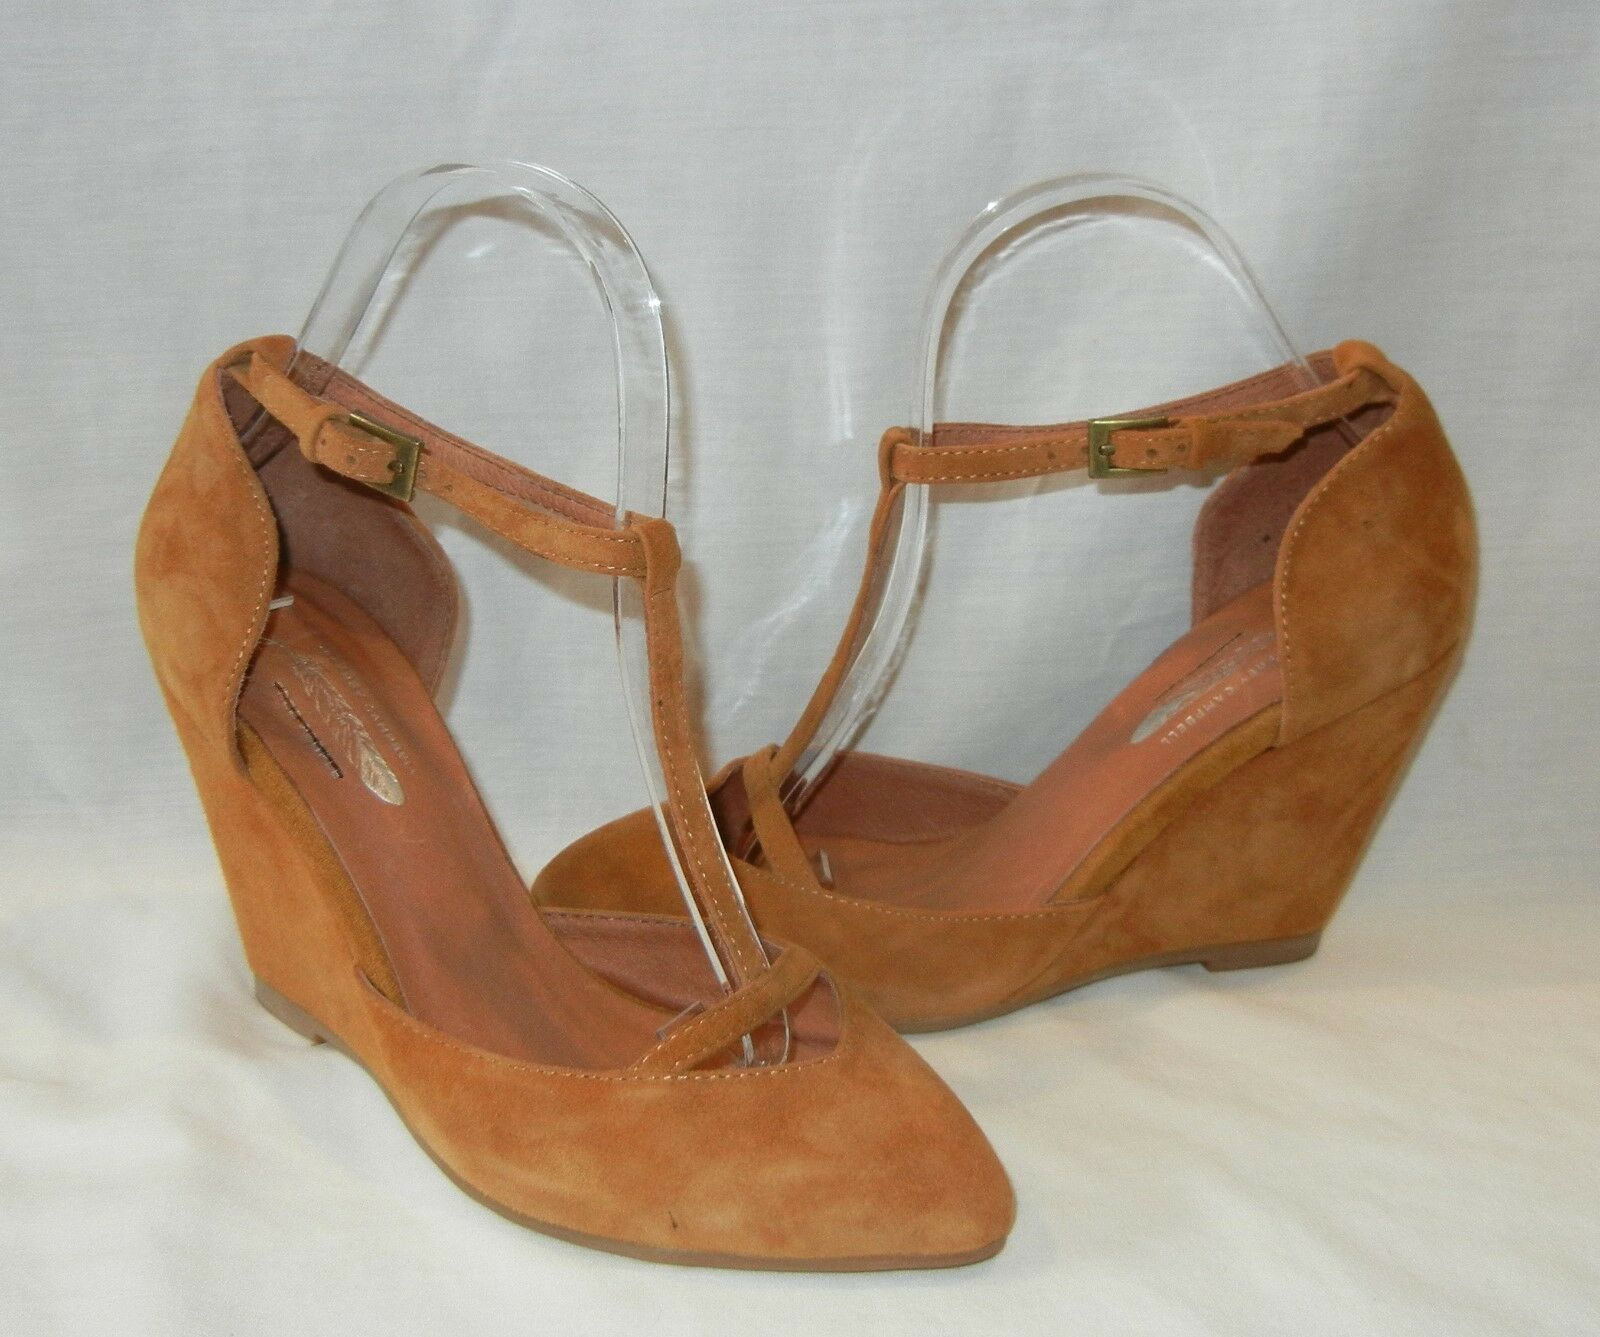 Jeffrey Campbell Women's Eyes On You Suede Wedge Heels Retail  148 size 8